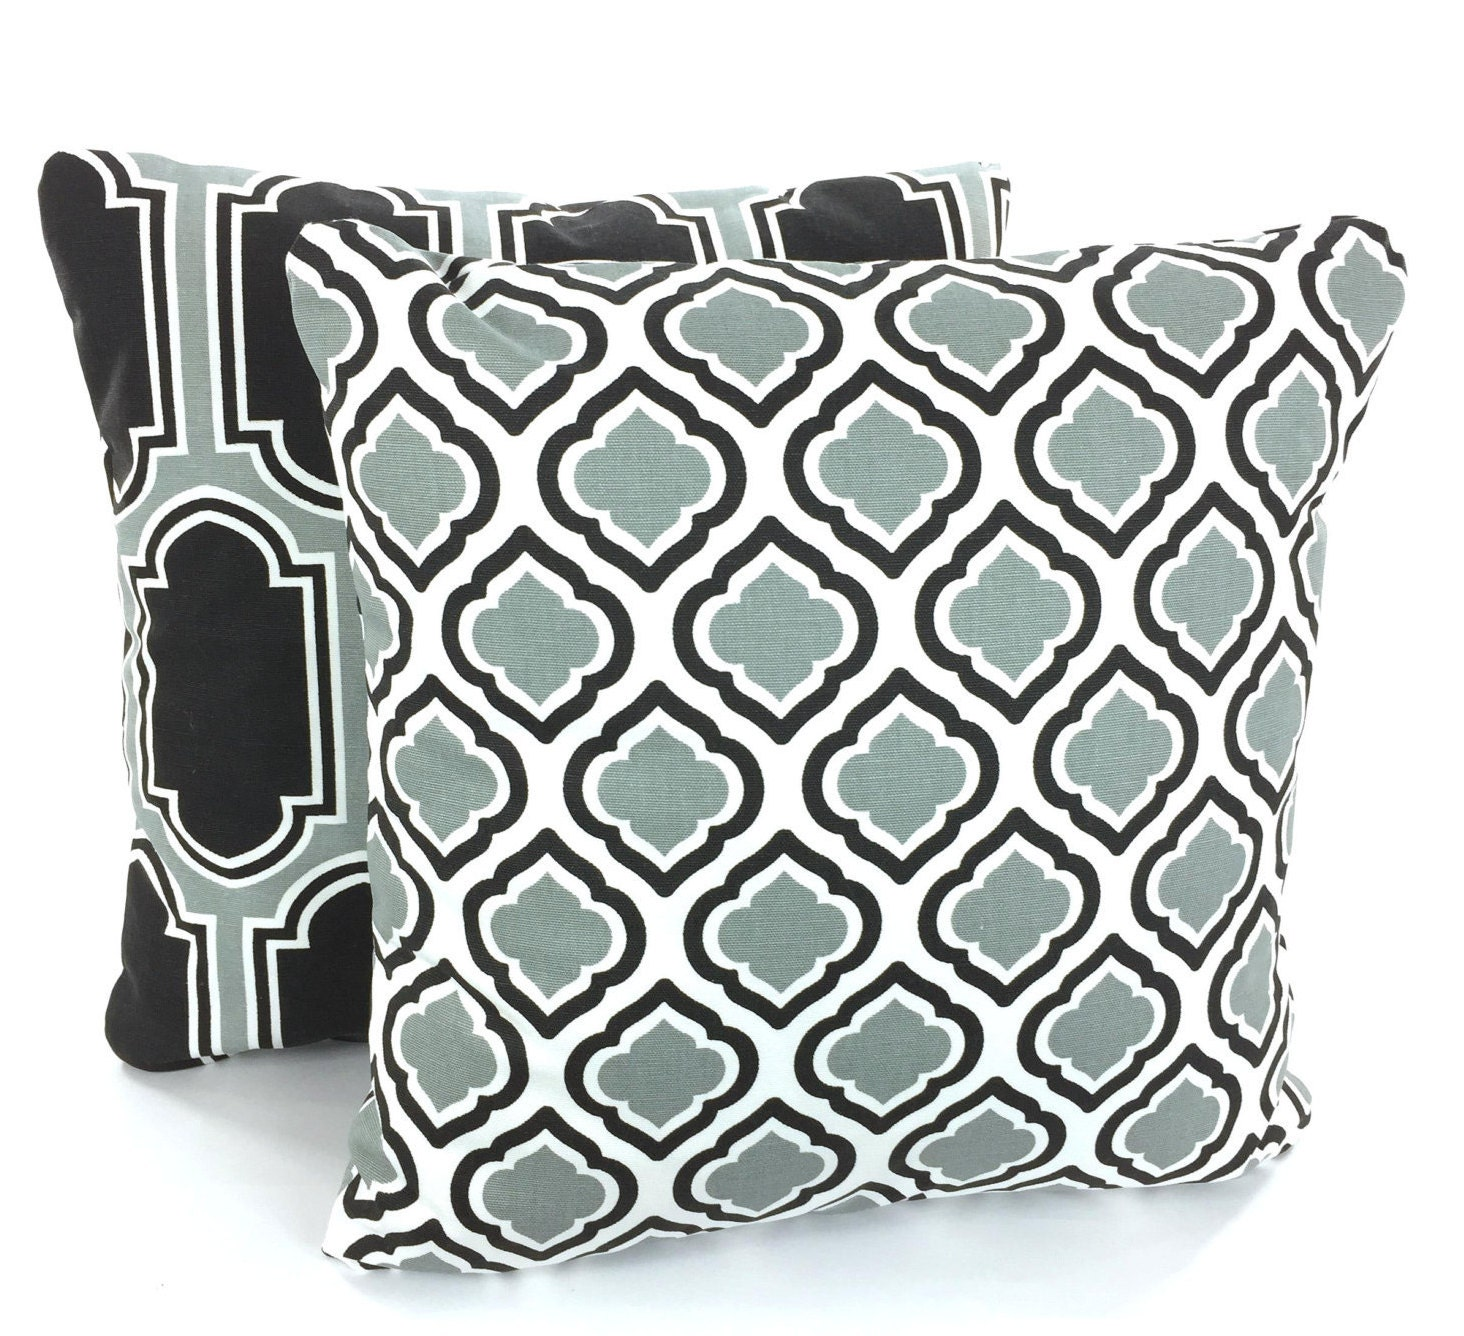 Gray Black White Throw Pillow Covers Decorative Pillows Cushion Cover Cool Grey White Fargo Curtis Couch Sofa Bed Set Of Two Various Sizes